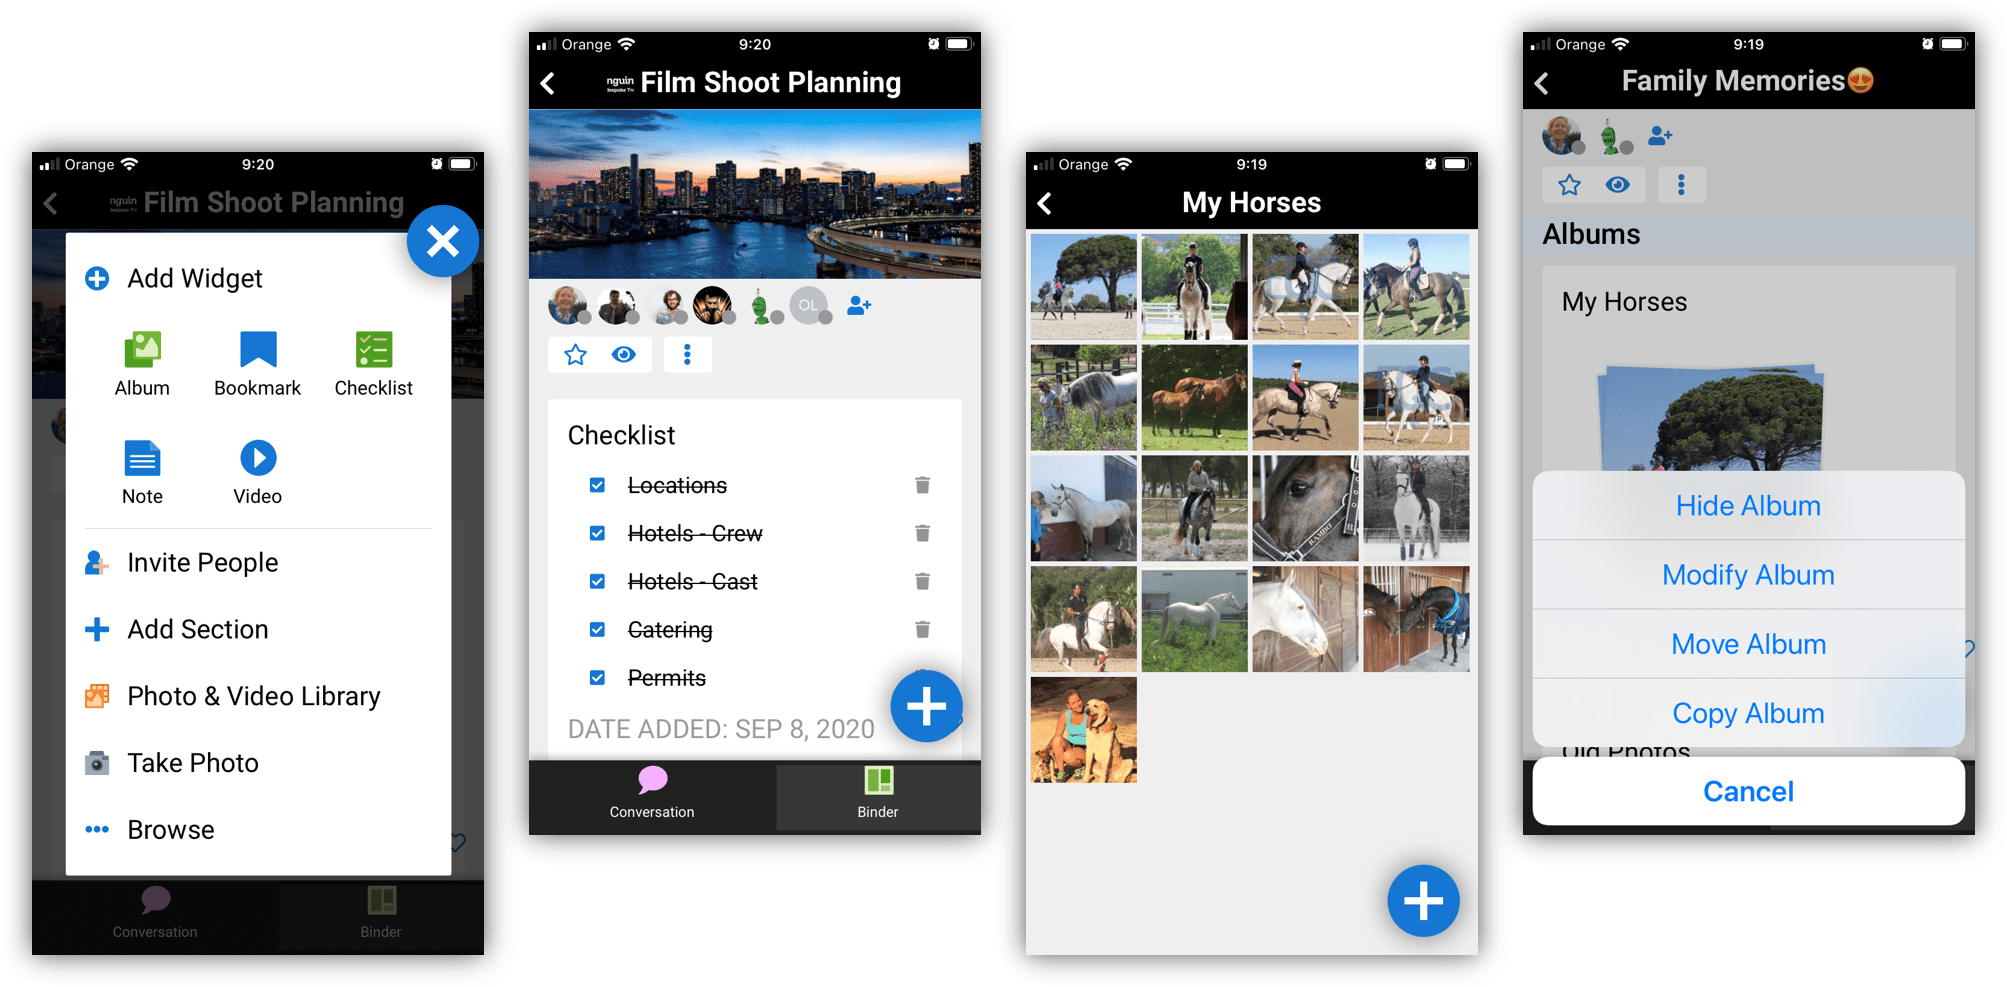 Different App features